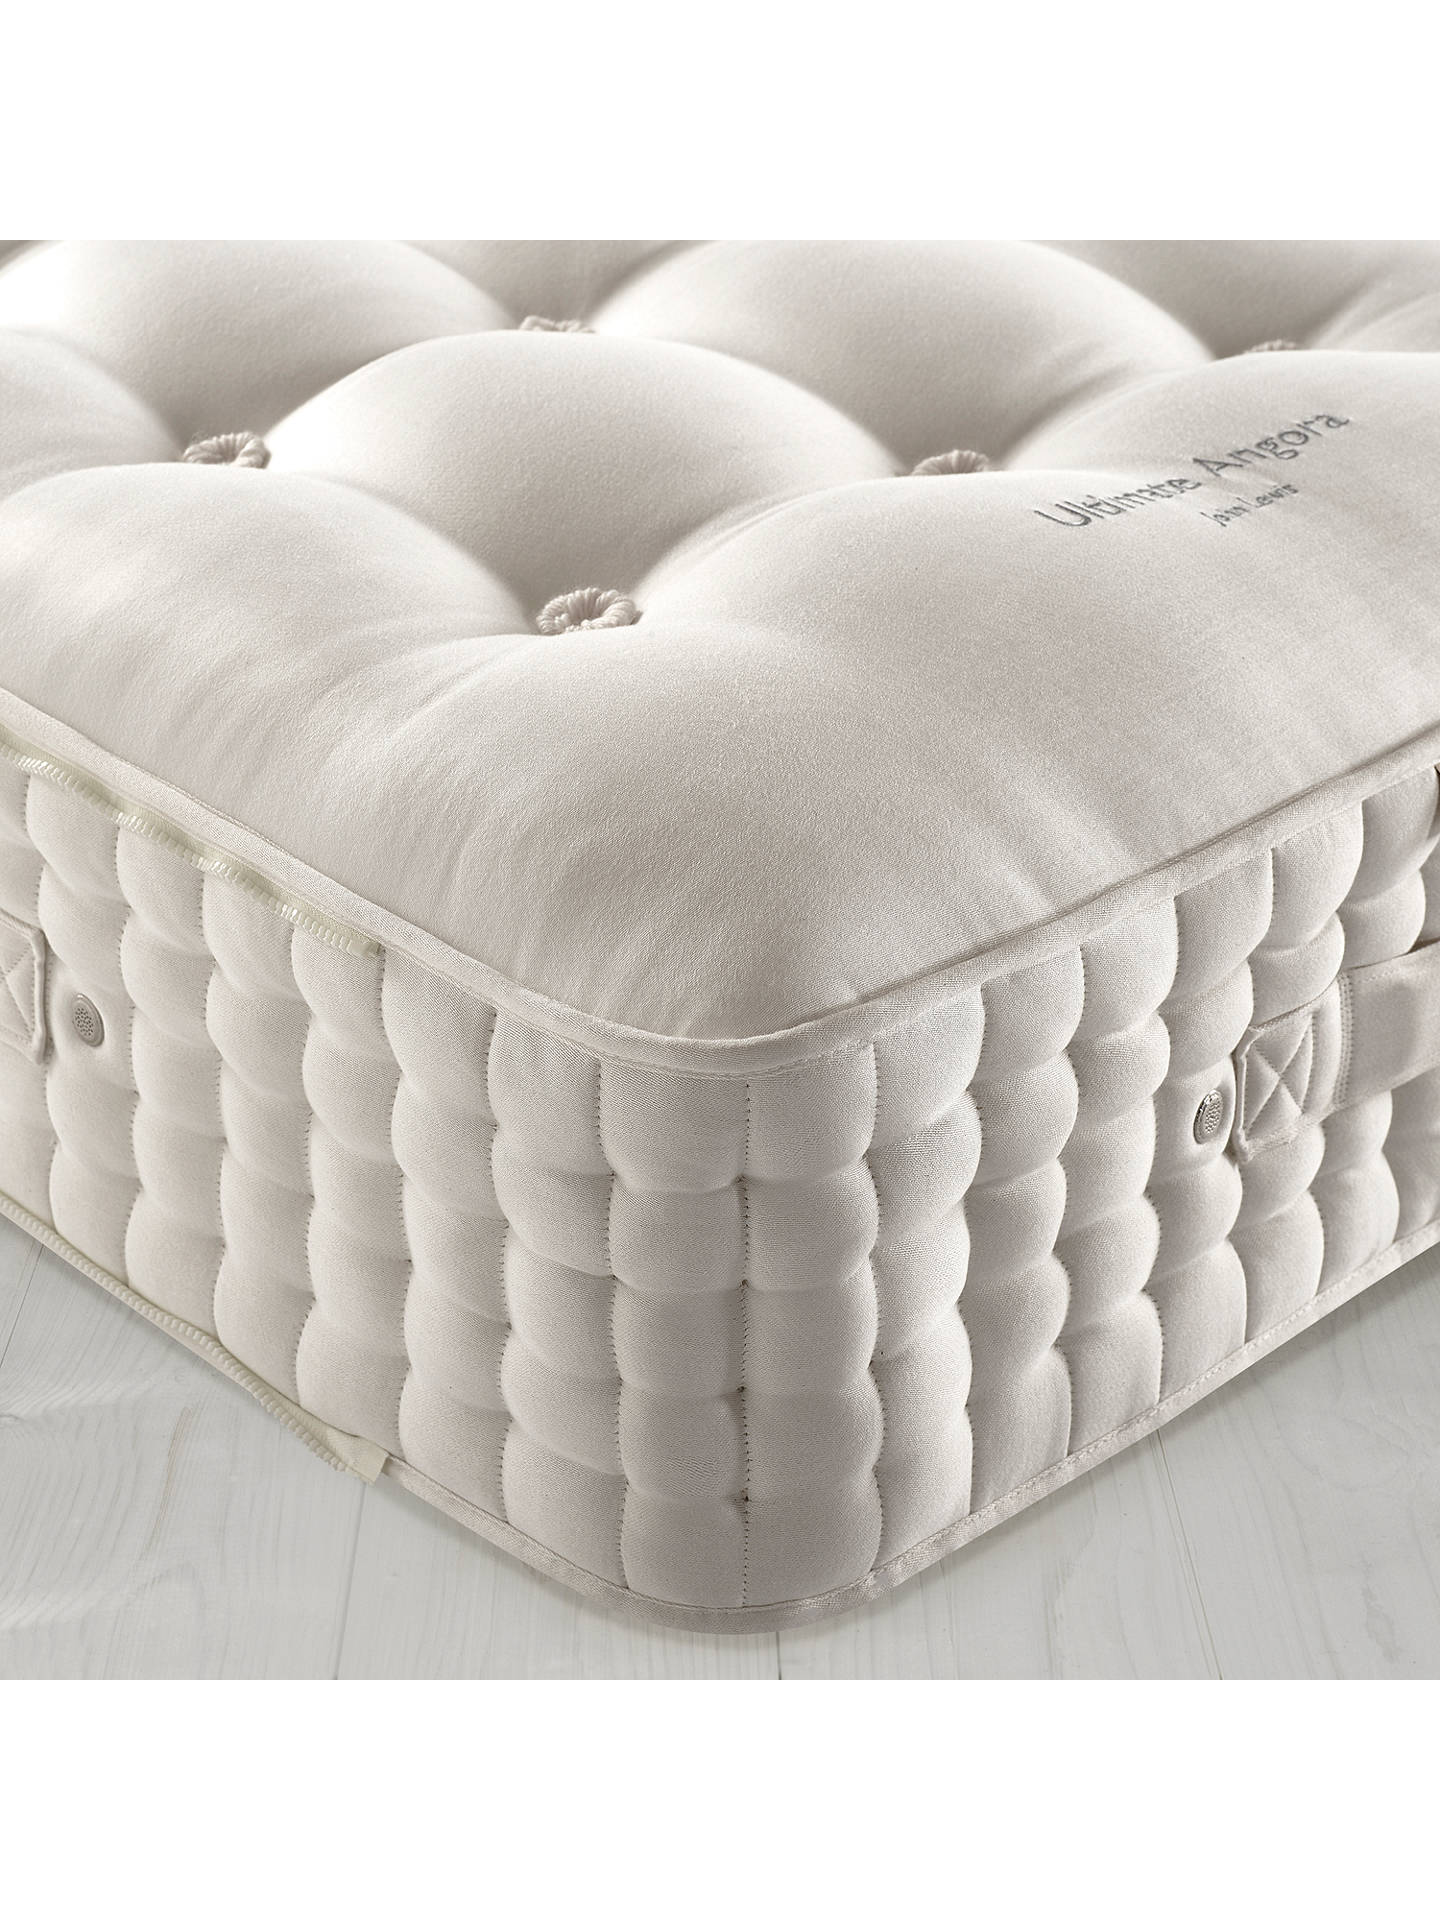 BuyJohn Lewis & Partners The Ultimate Collection Goat Angora Pocket Spring Zip Link Mattress, Medium, Emperor Online at johnlewis.com